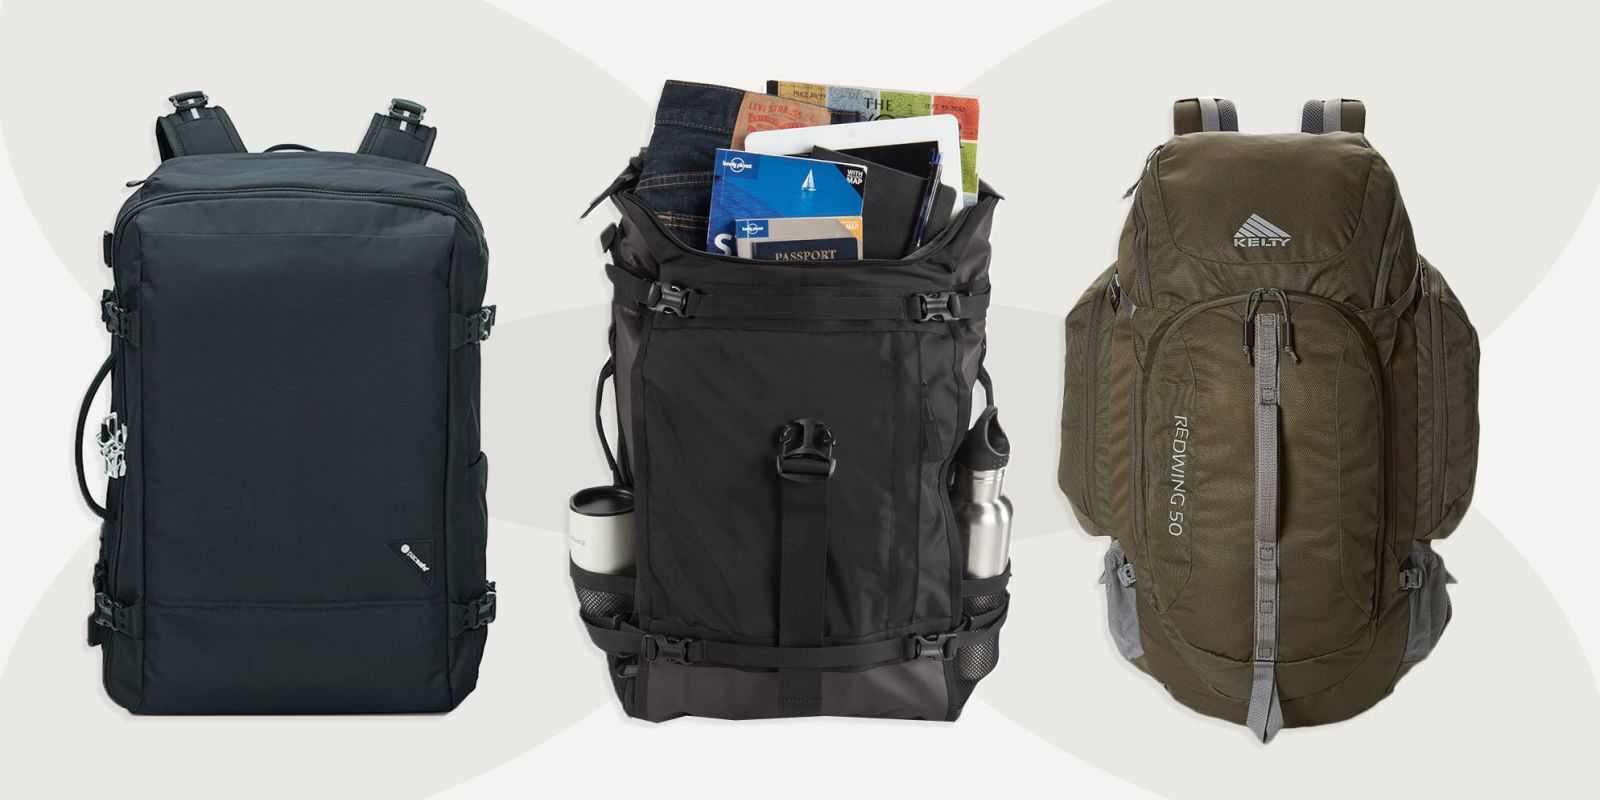 11 Travel Backpacks Made for Exploring the World